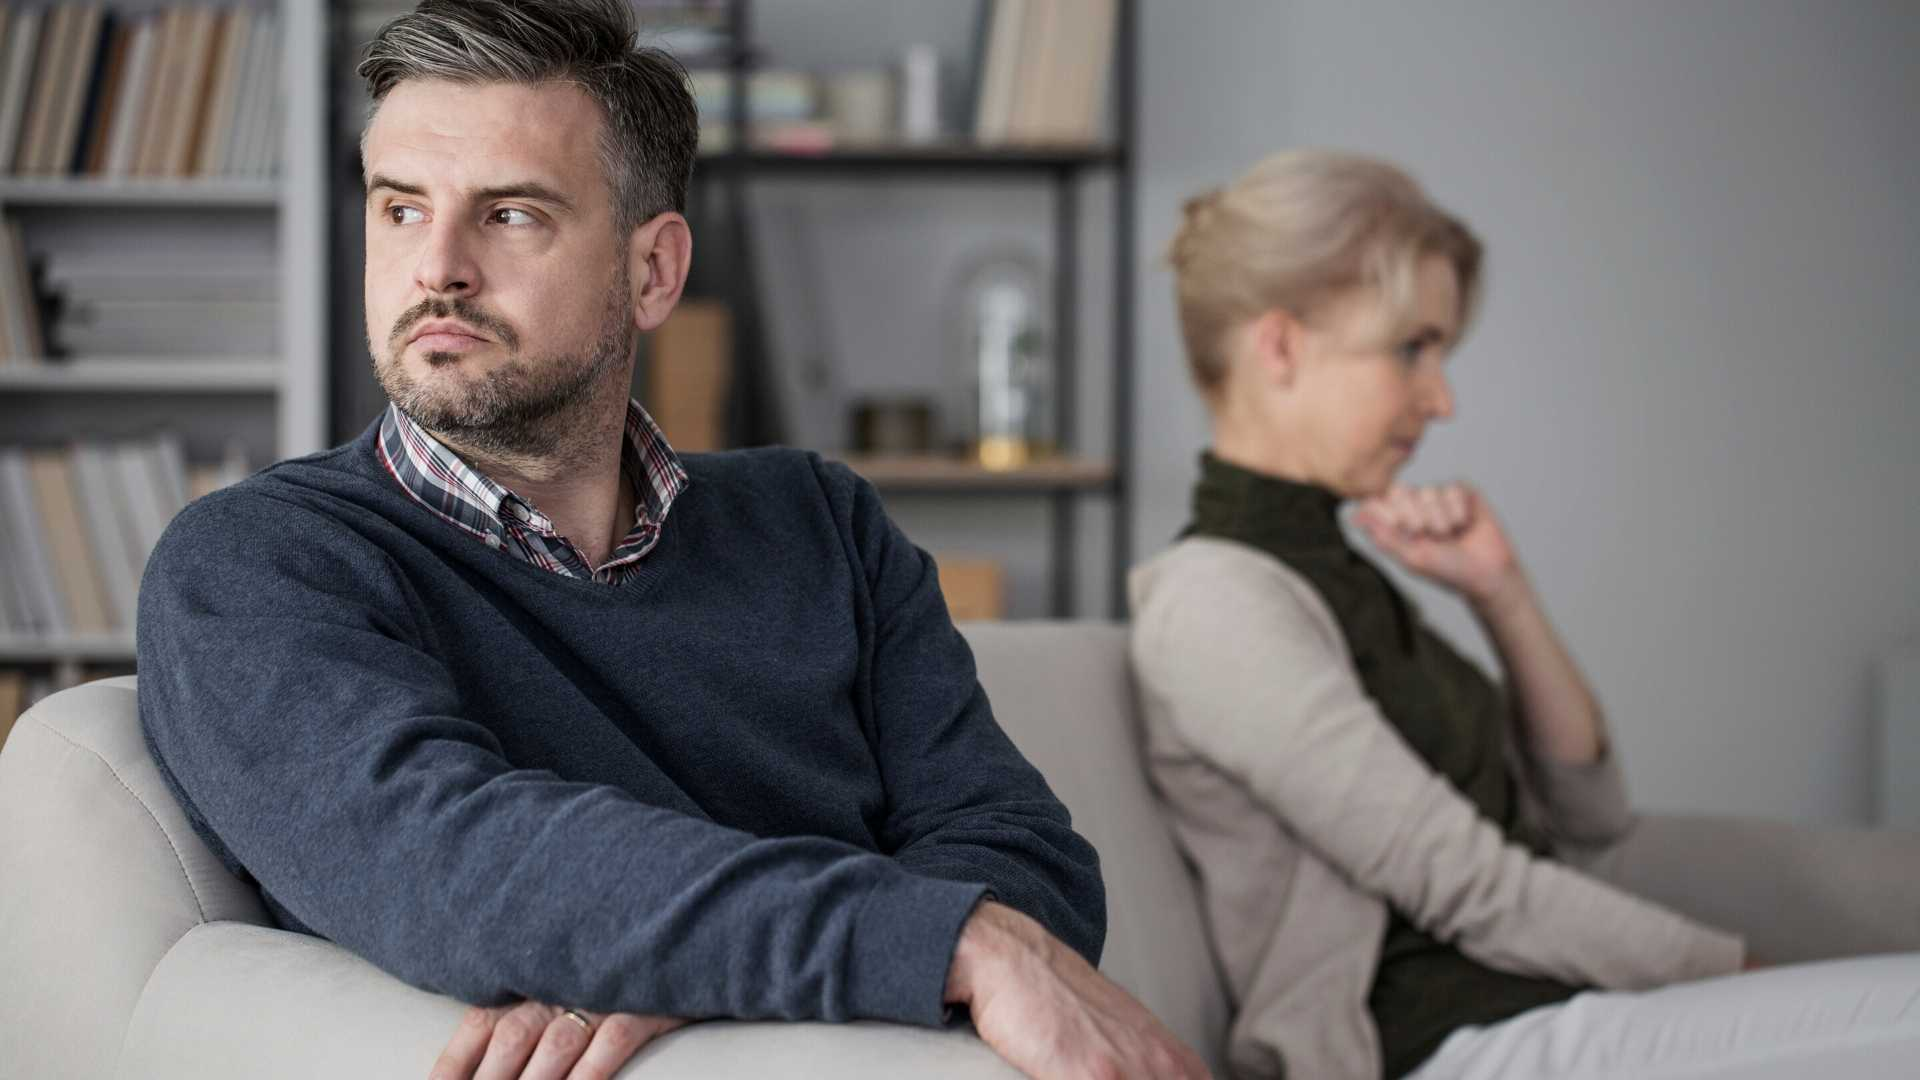 How One Separated Couple Is Working Together During The Covid19 Crisis - Lockdown